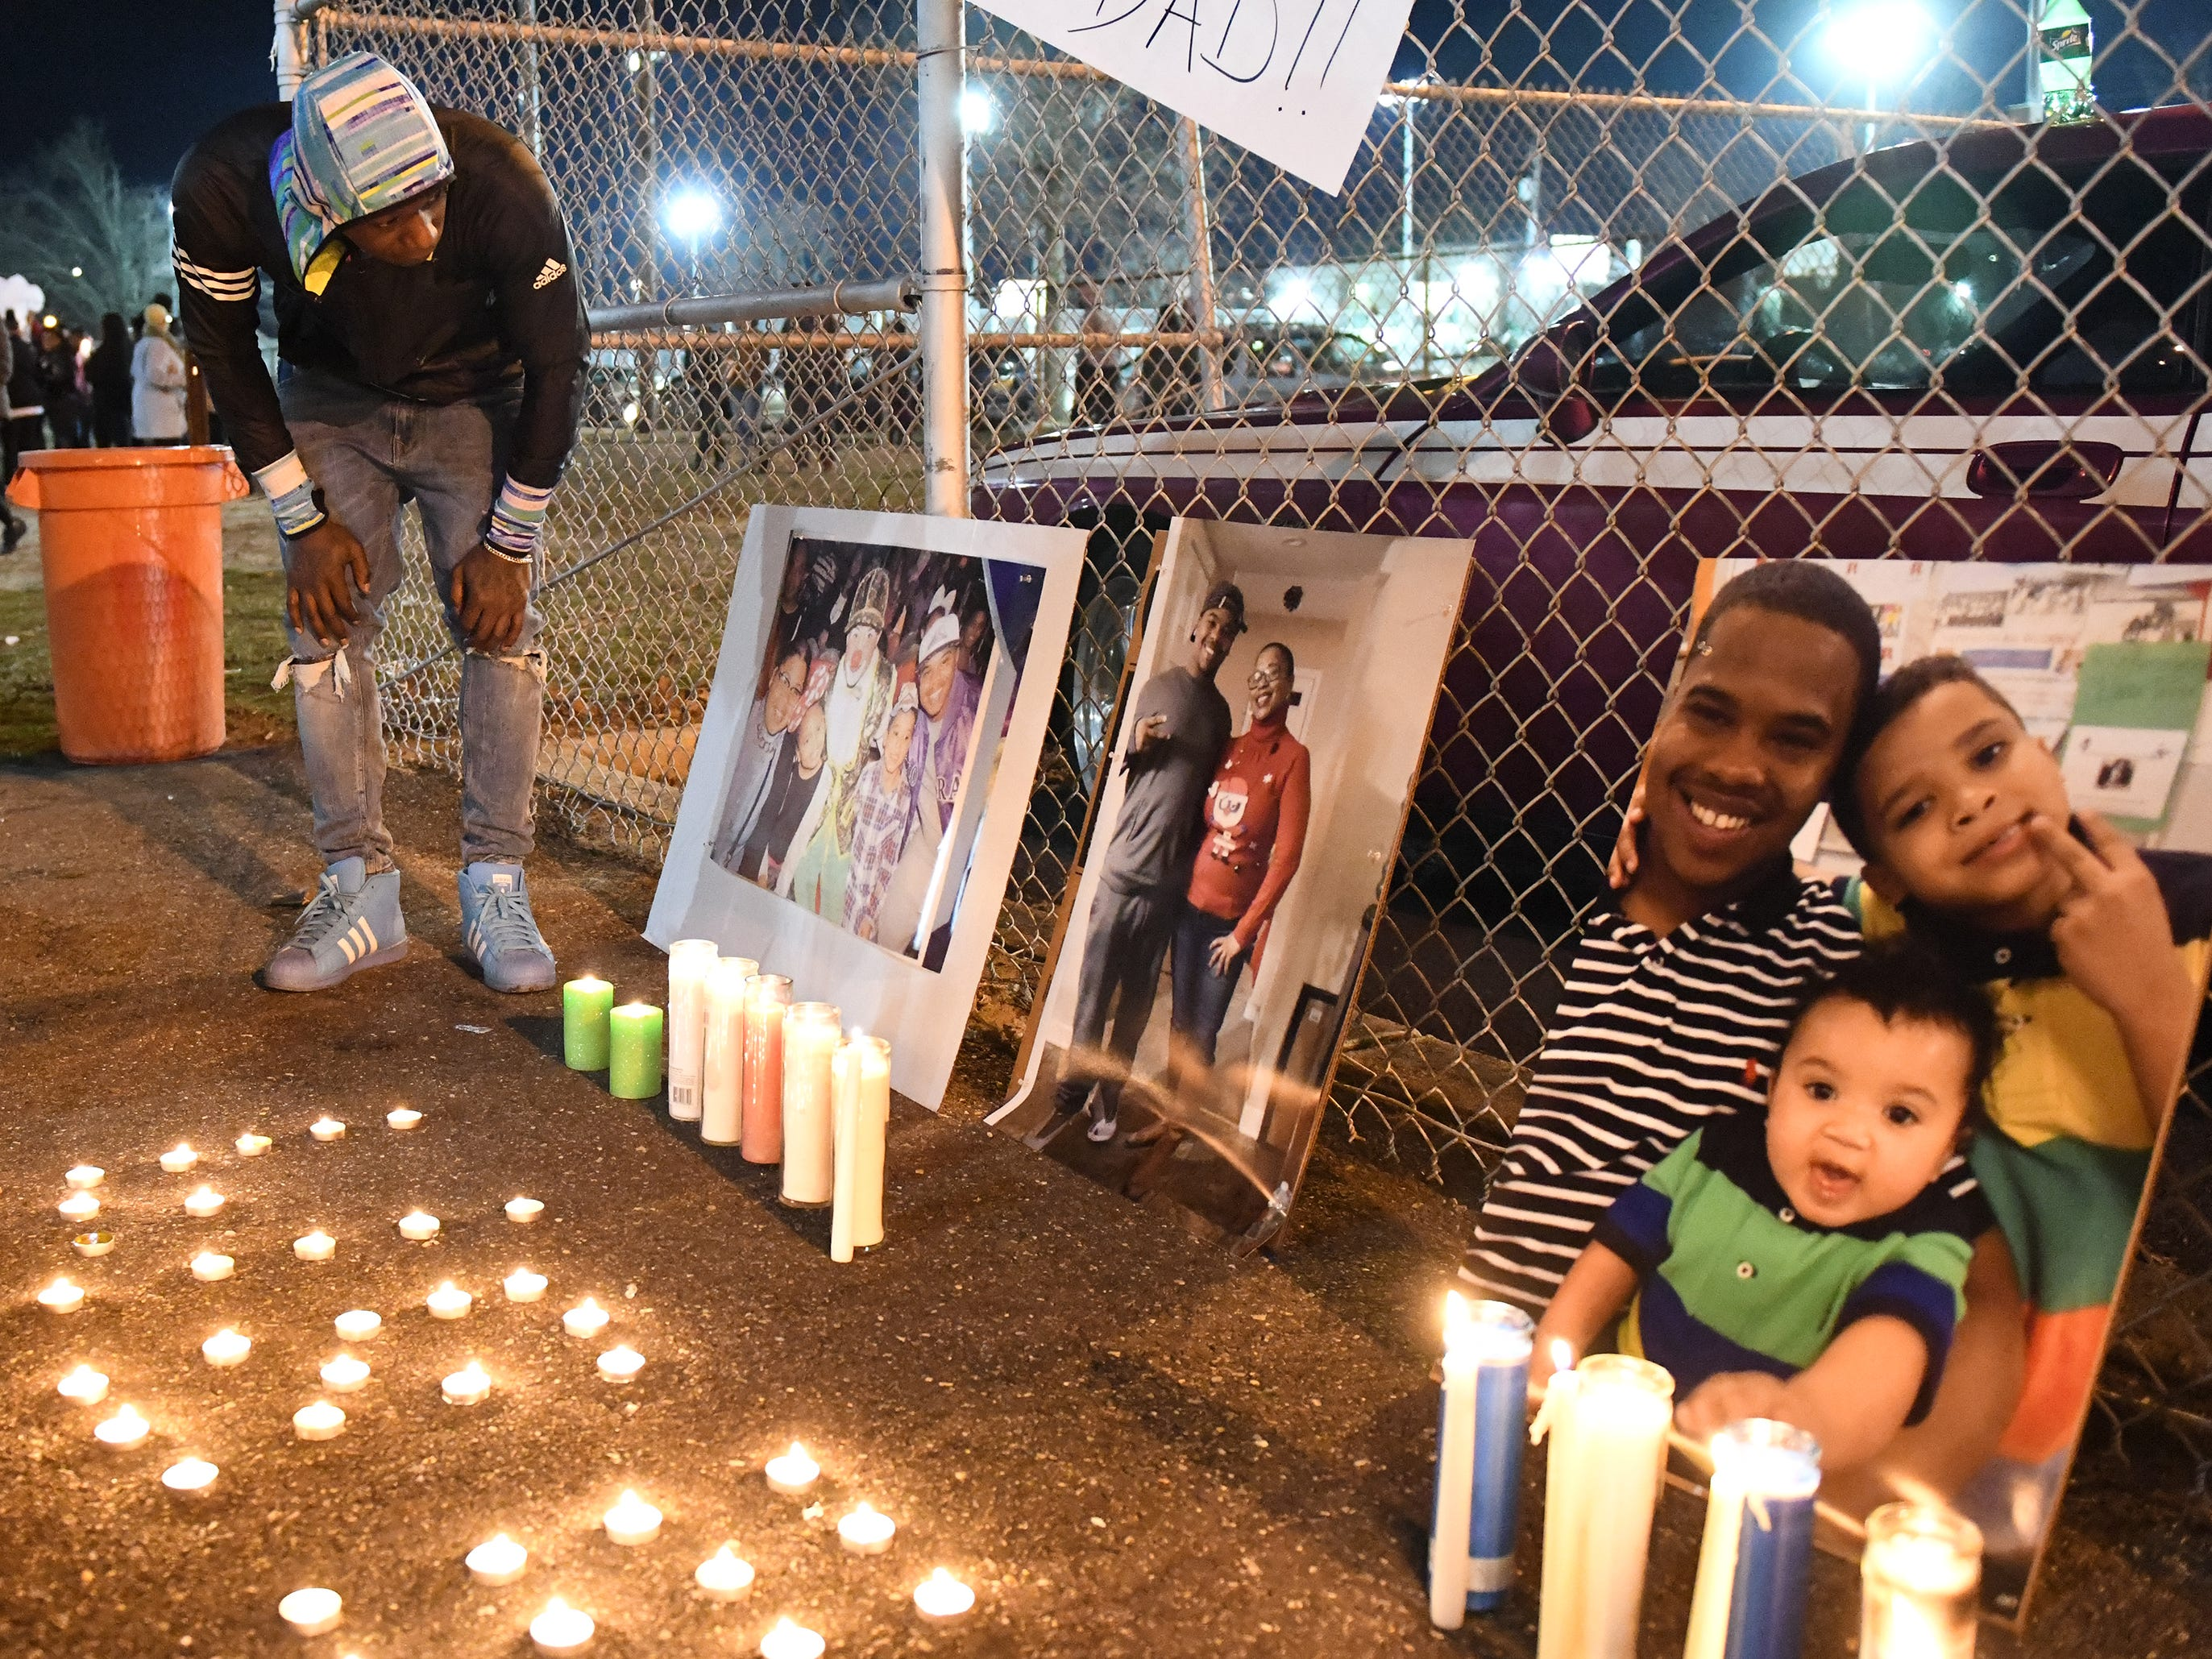 Family and friends gather at the Vineland Midget Football League grounds during a candlelight vigil for 32-year-old Walter L. Brown III. Brown was fatally shot during a reported home invasion last week.